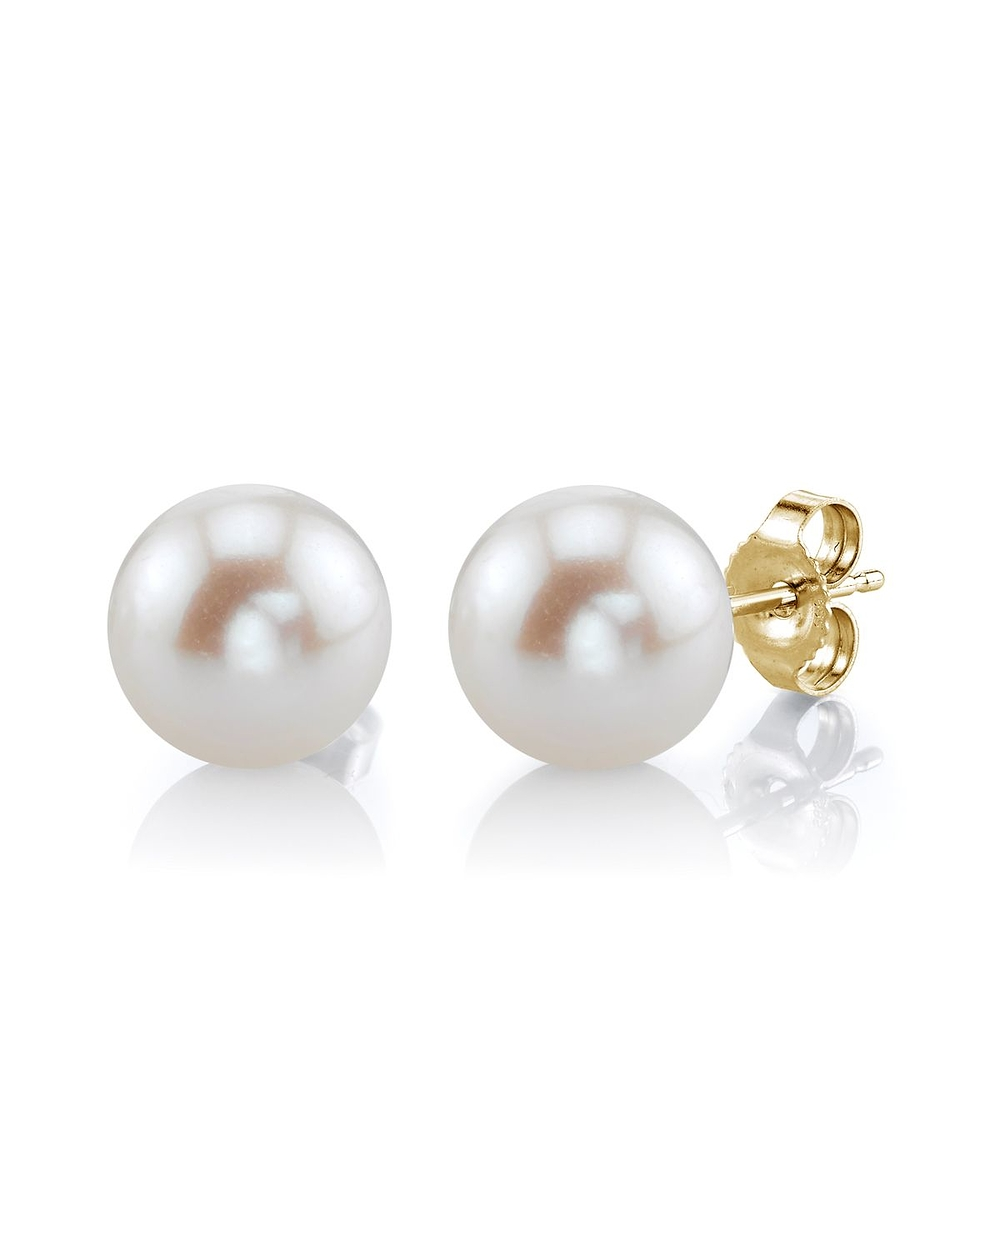 pearl earrings 7mm white freshwater pearl stud earrings rxgfpuk